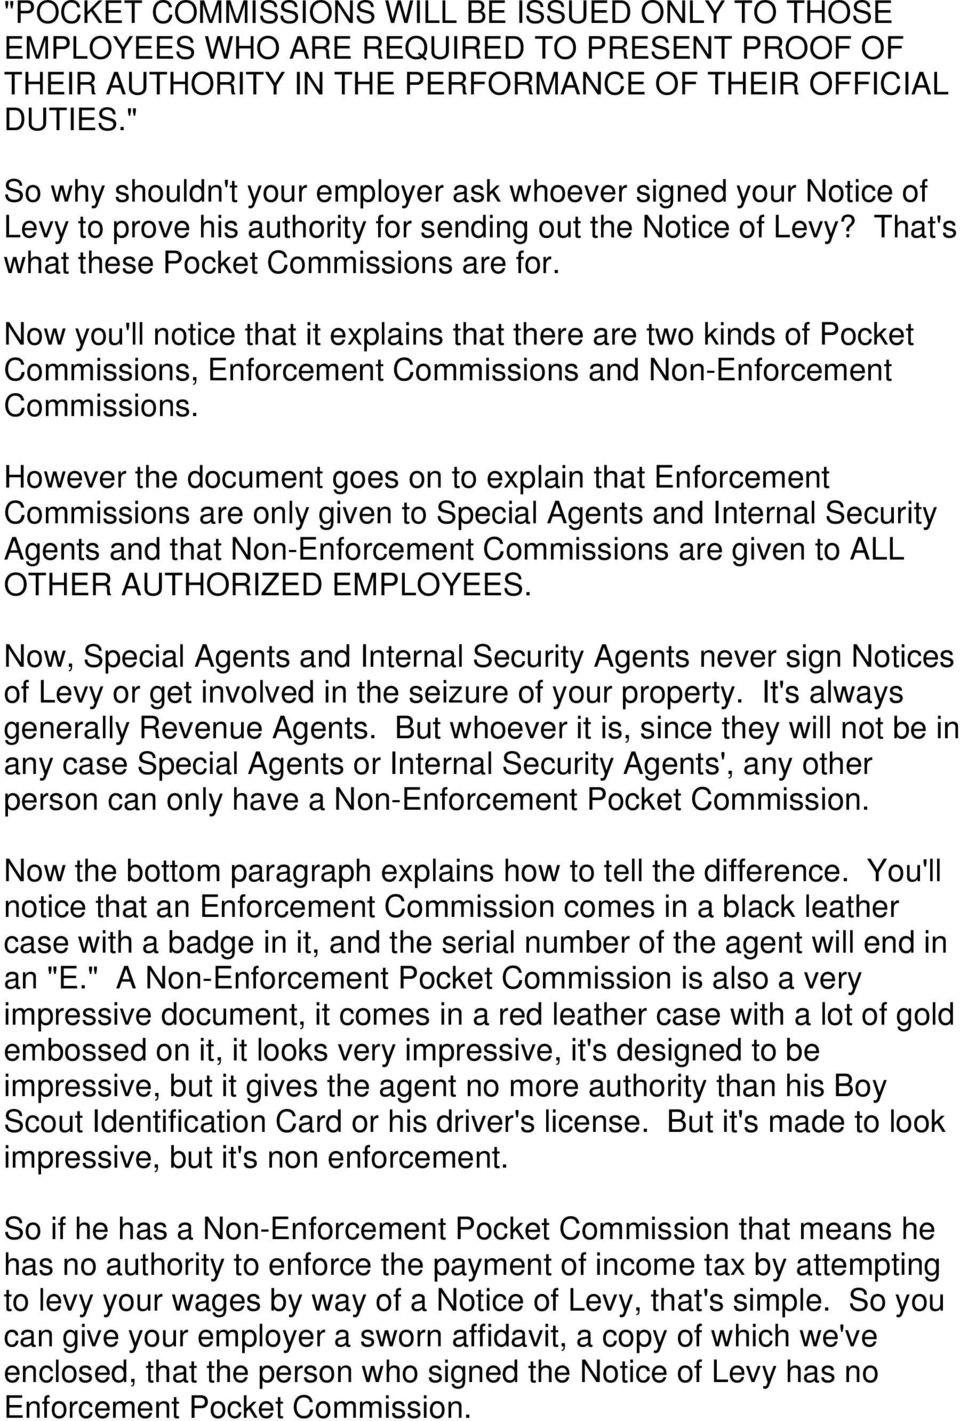 Now you'll notice that it explains that there are two kinds of Pocket Commissions, Enforcement Commissions and Non-Enforcement Commissions.